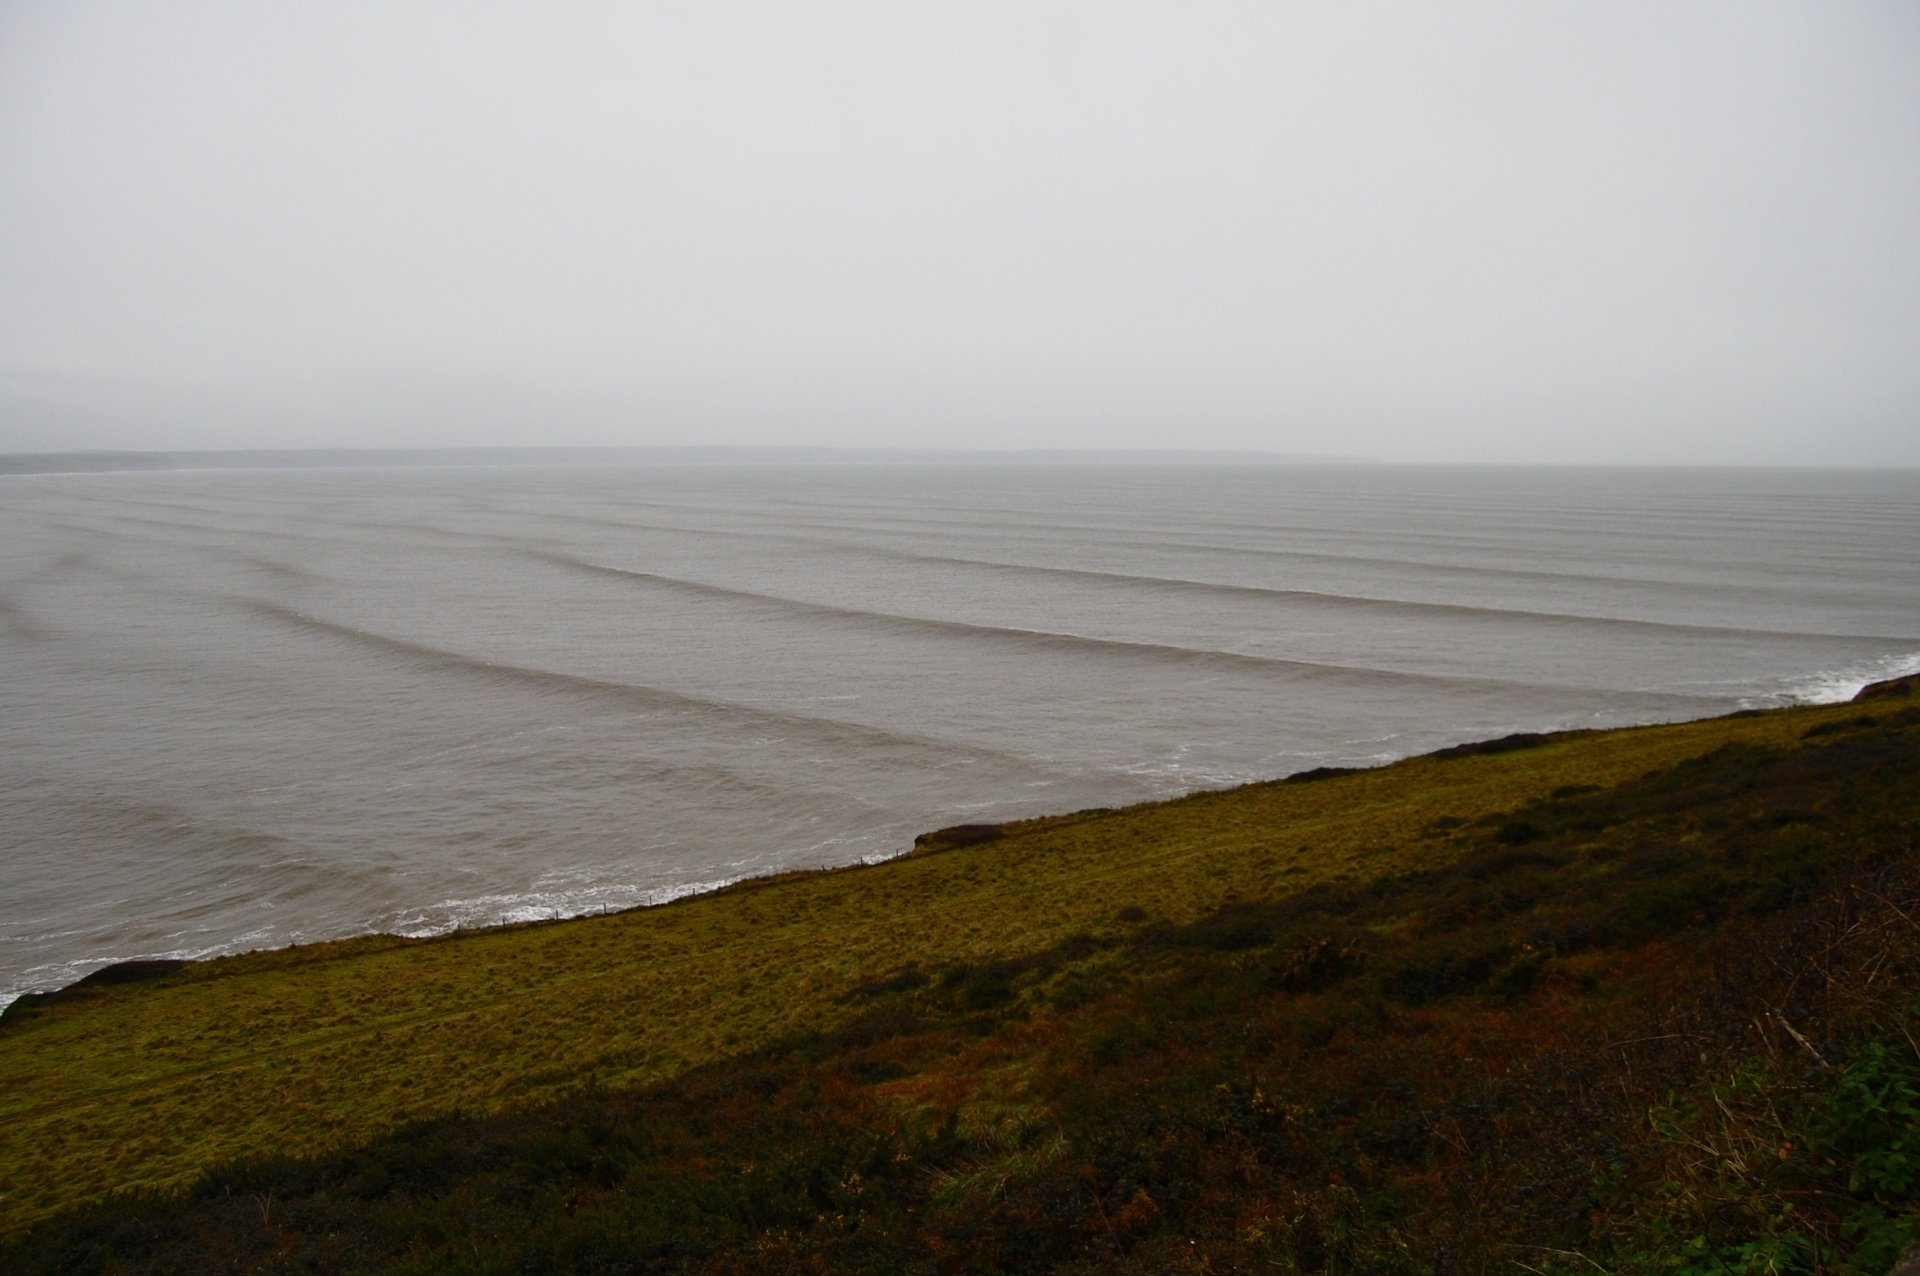 Peter Doggart's photo of Saunton Sands